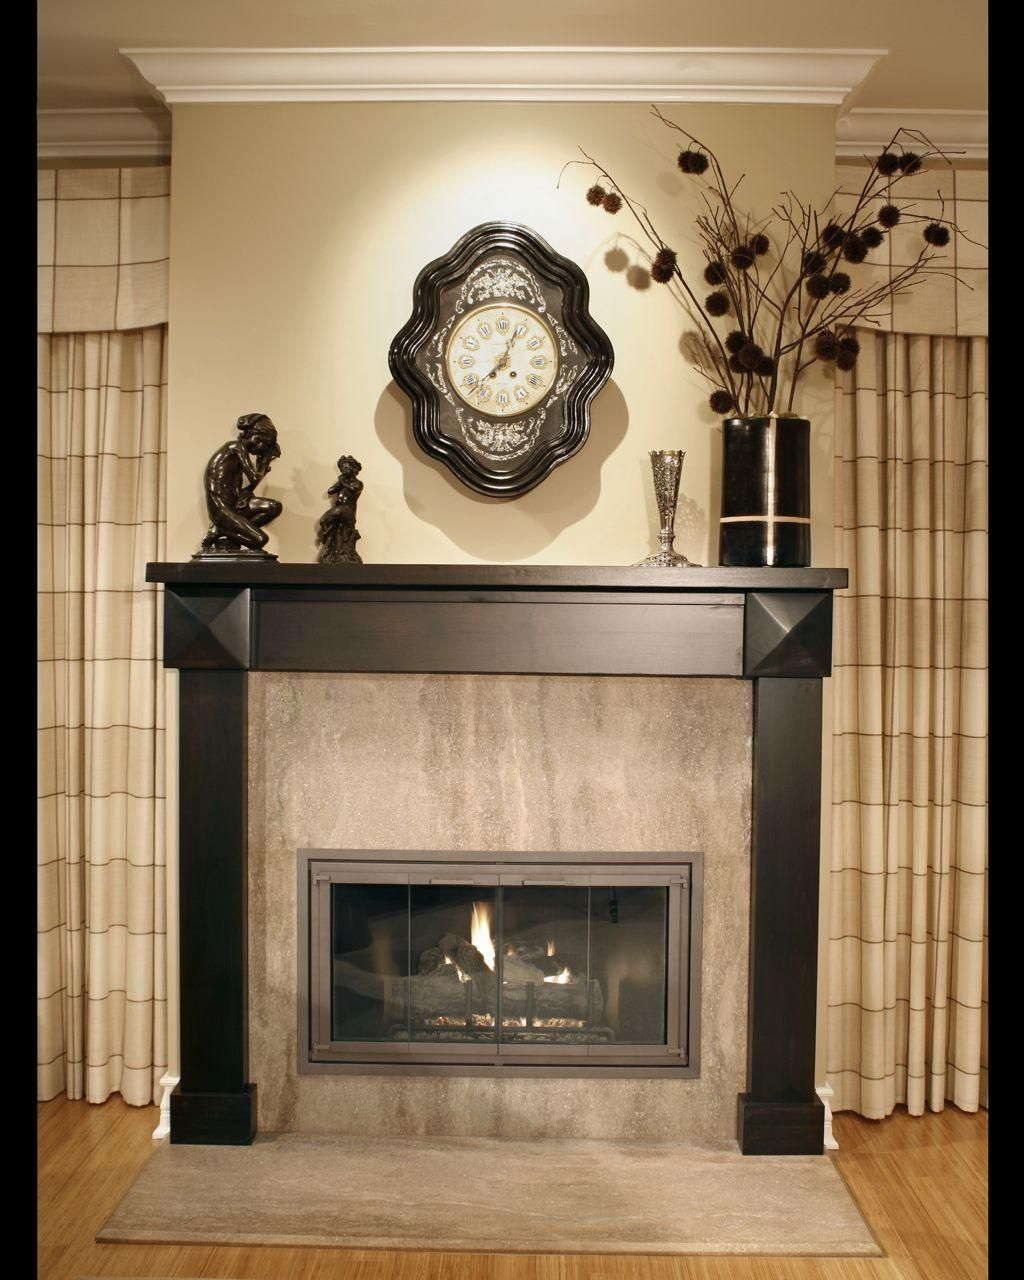 Captivating wall mounted fireplace ideas beautiful wall Fireplace surround ideas